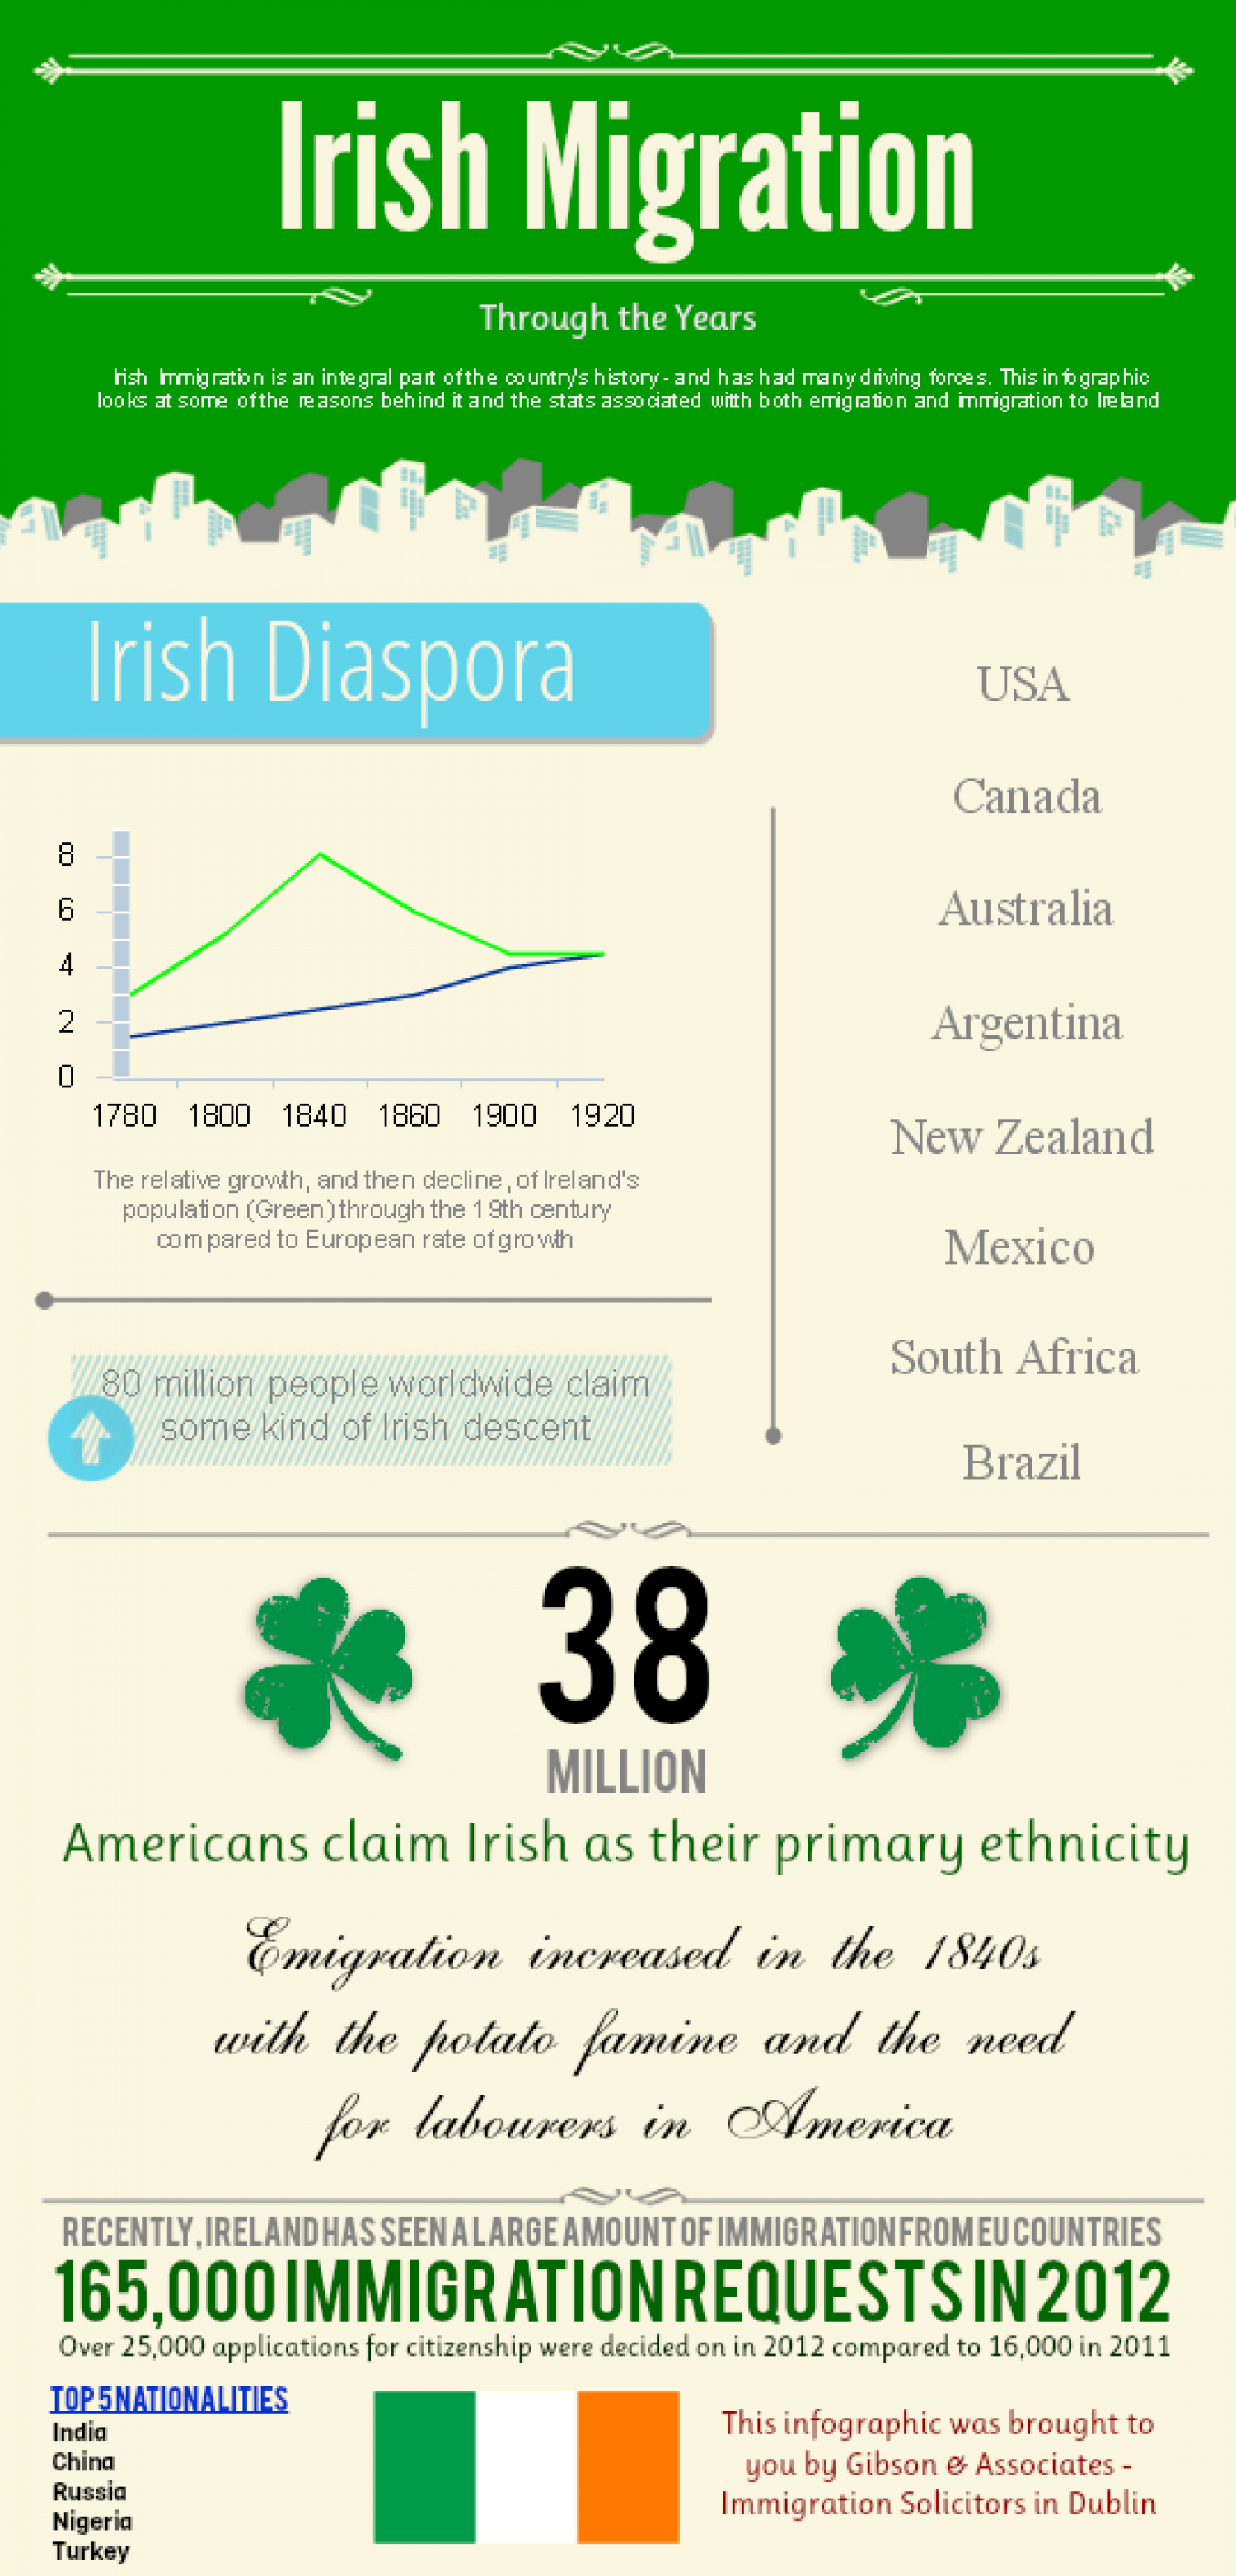 Irish Migration - Through the Years Infographic